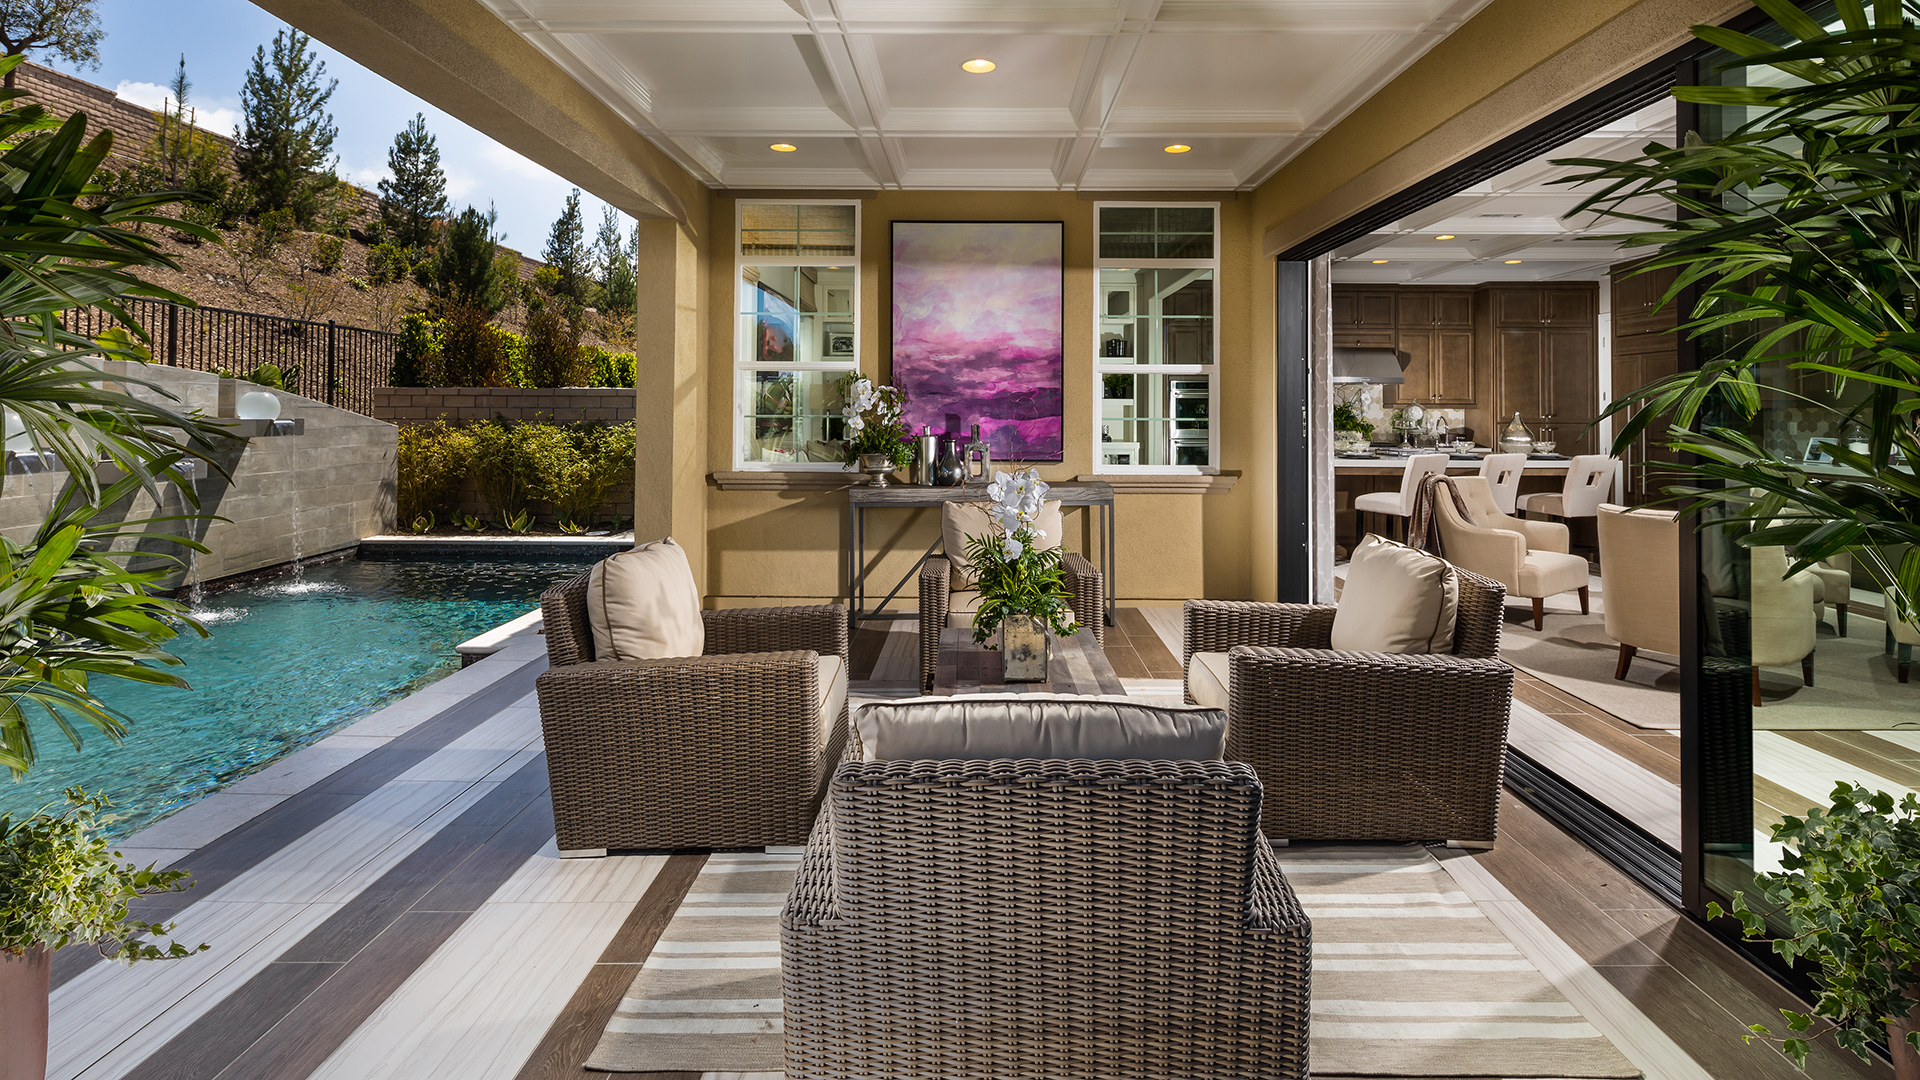 Luxury outdoor living space.